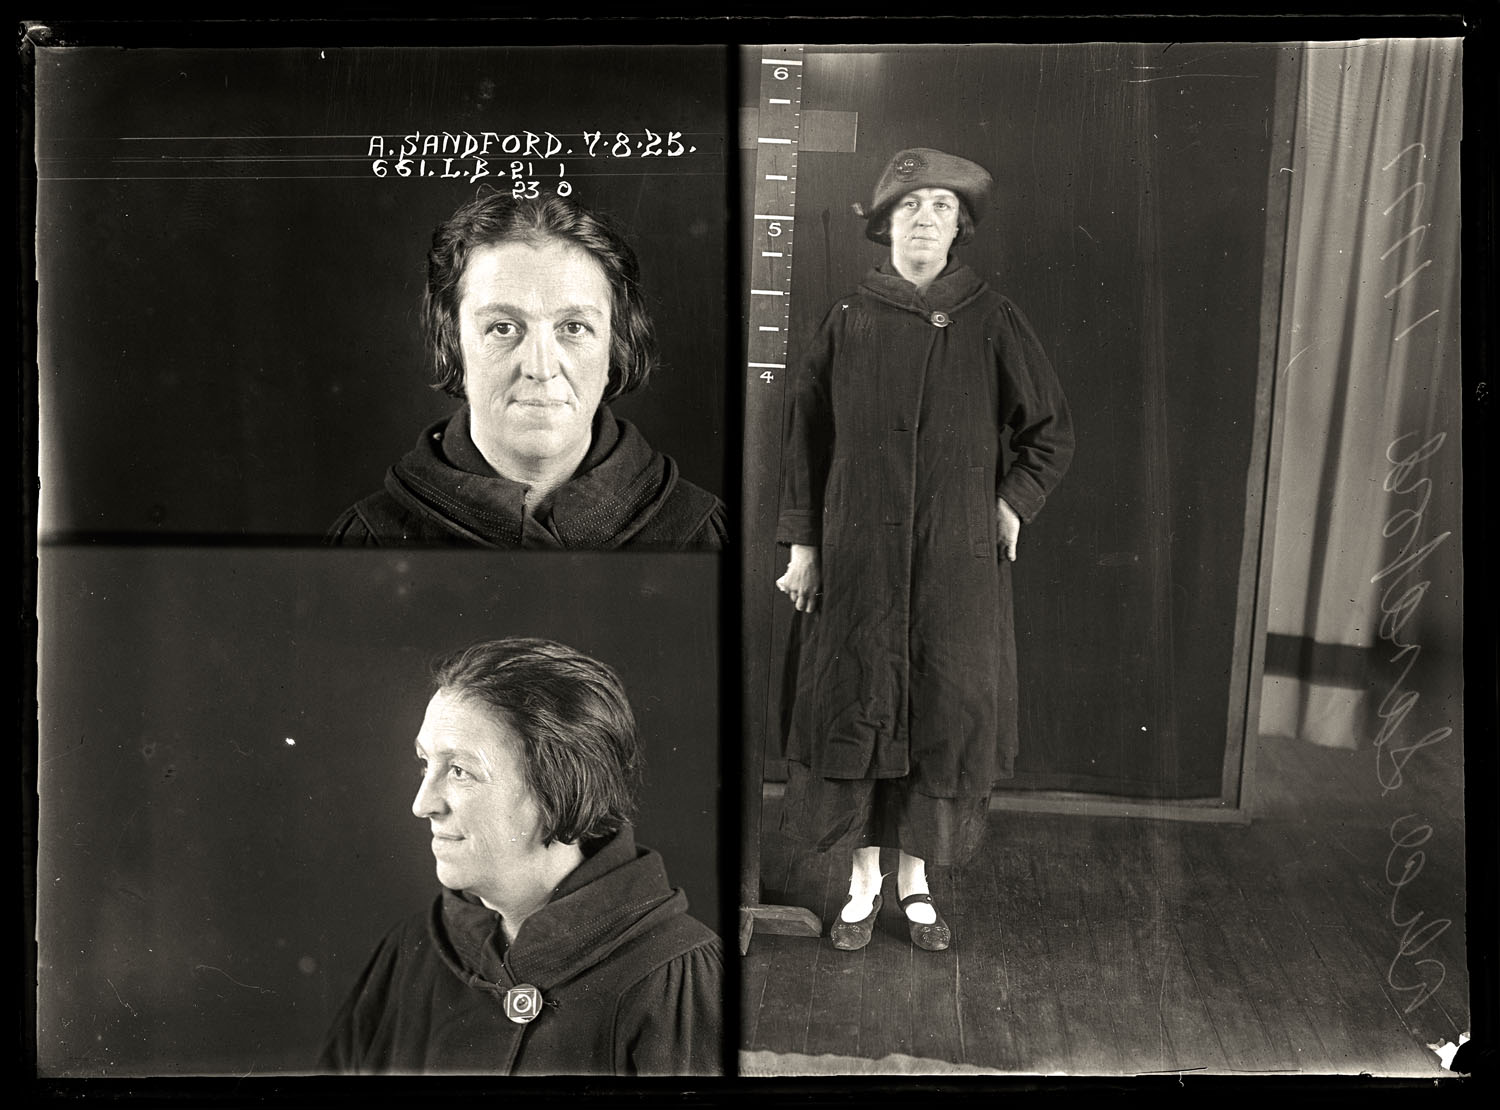 Alice Sandford, criminal record number 661LB, 7 August 1925. State Reformatory for Women, Long Bay.